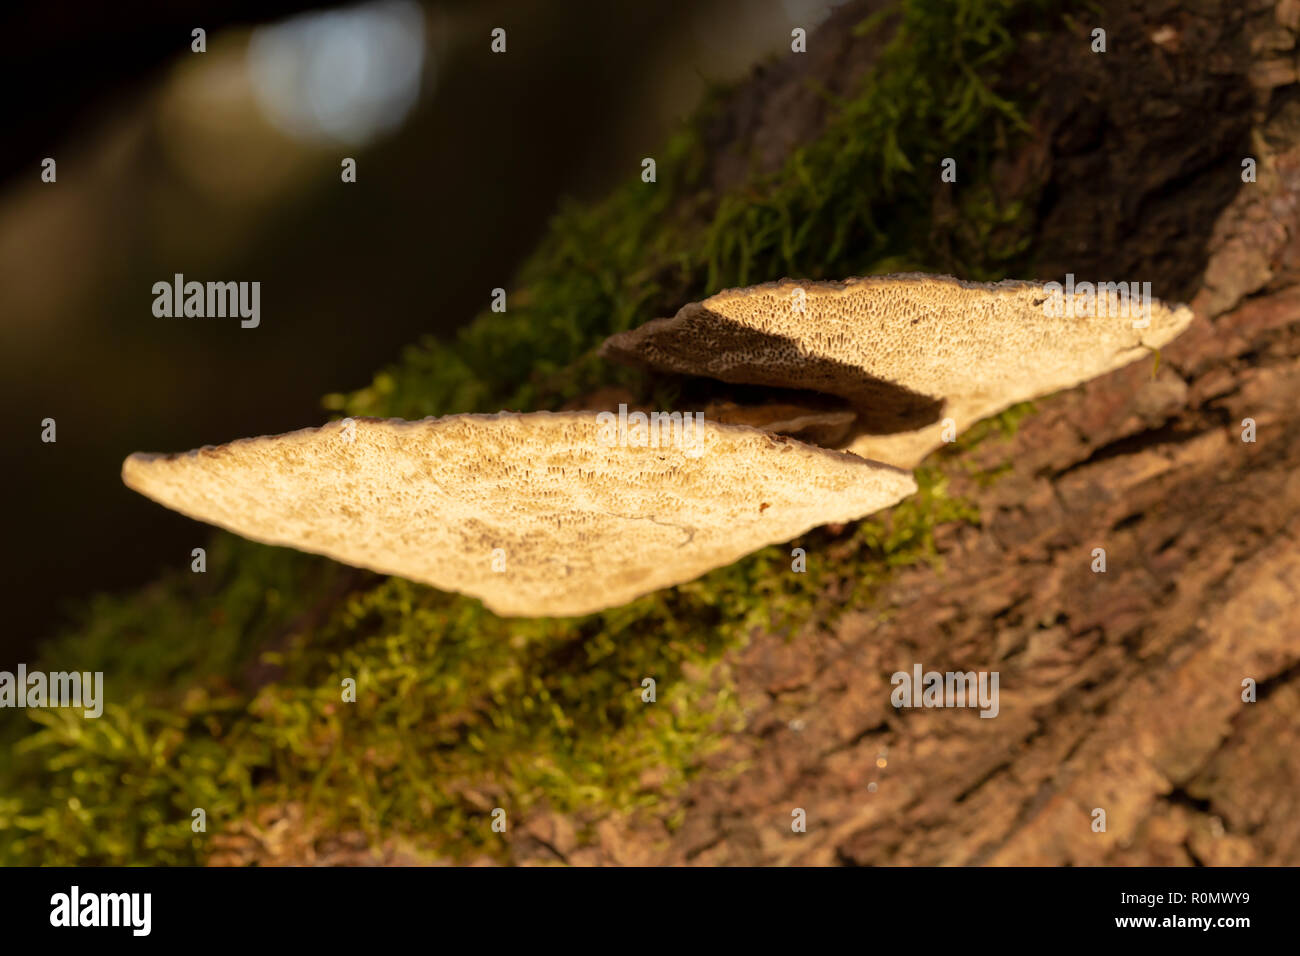 Colour photograph of a group of Blushing bracket polypores growing on-side of Willow branch shot with off camera flash with yellow filter from below. - Stock Image